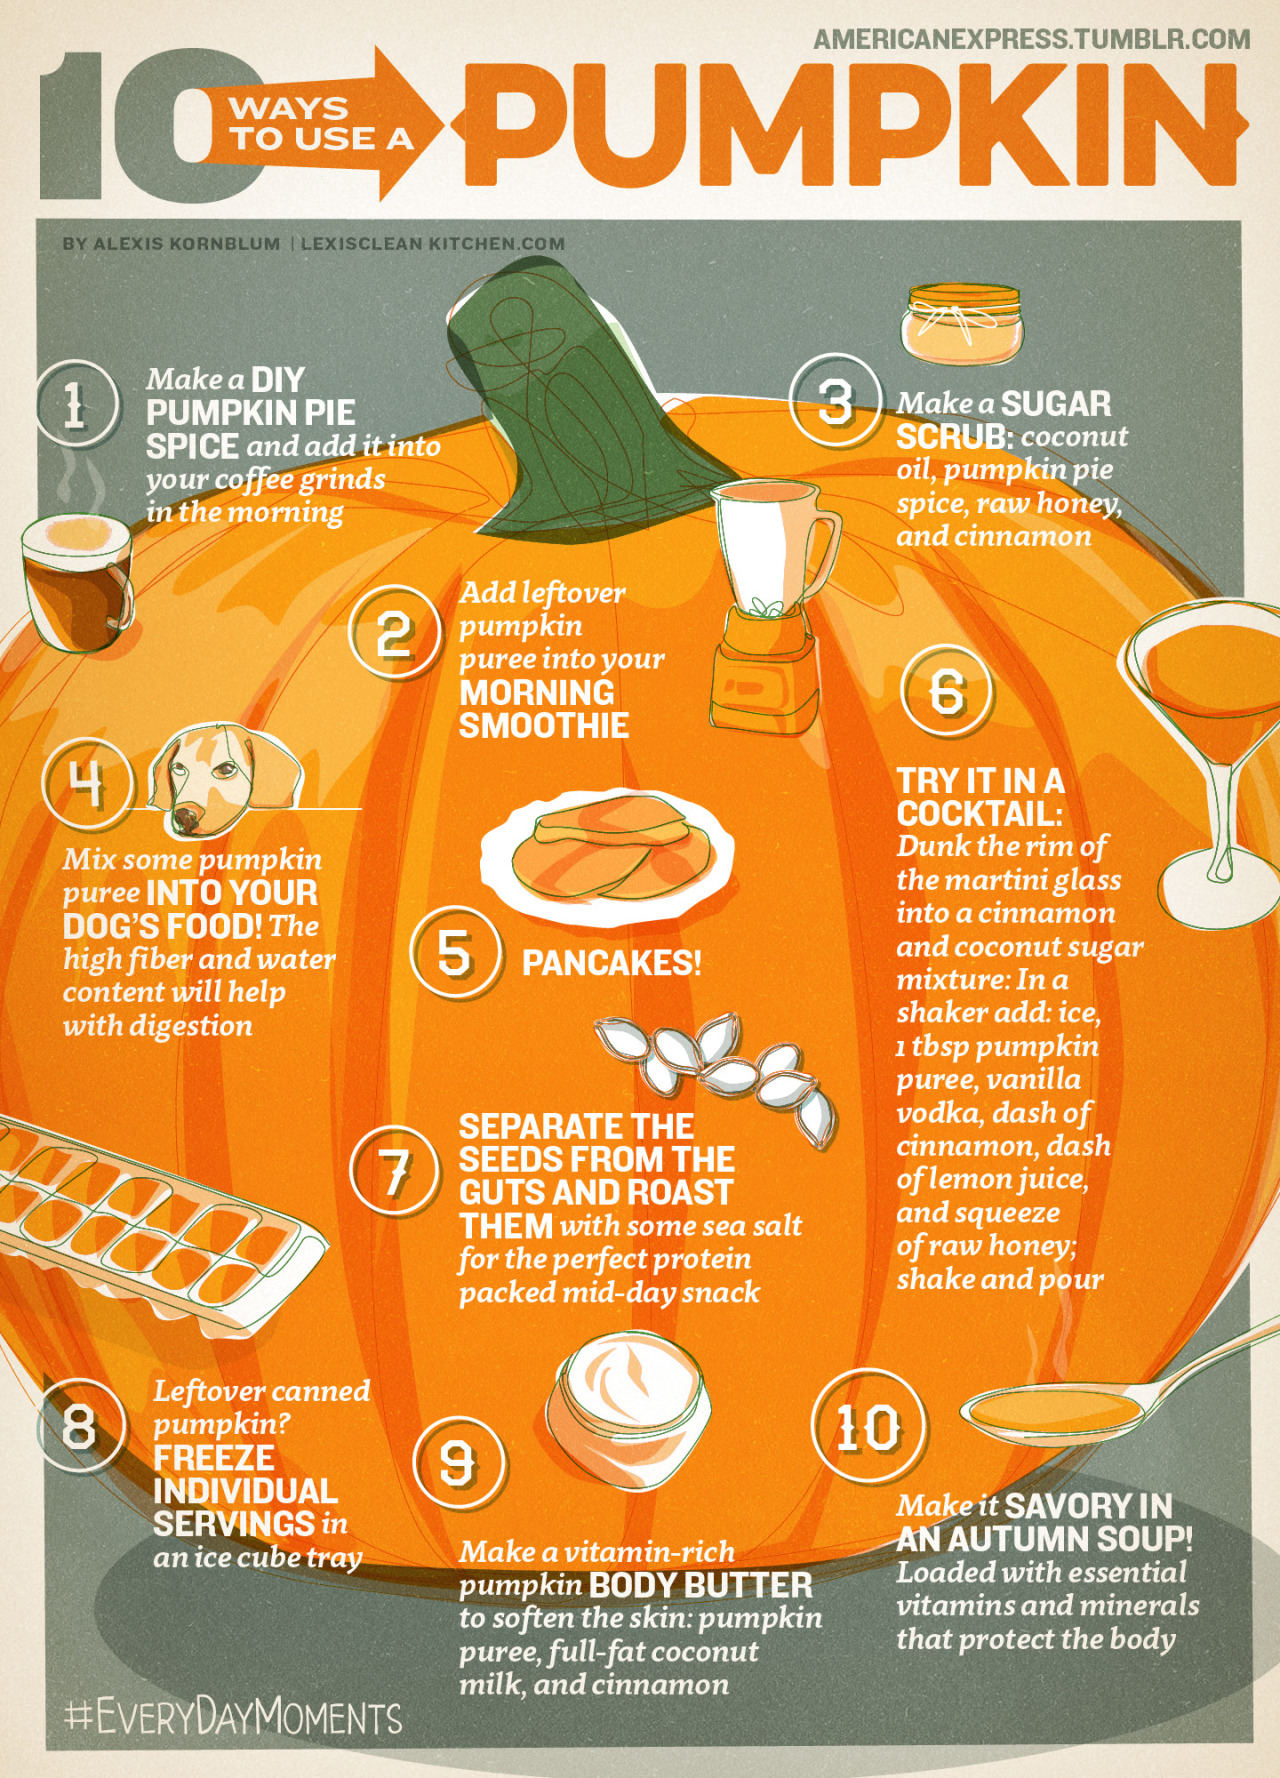 10 Ways To Use A Pumpkin